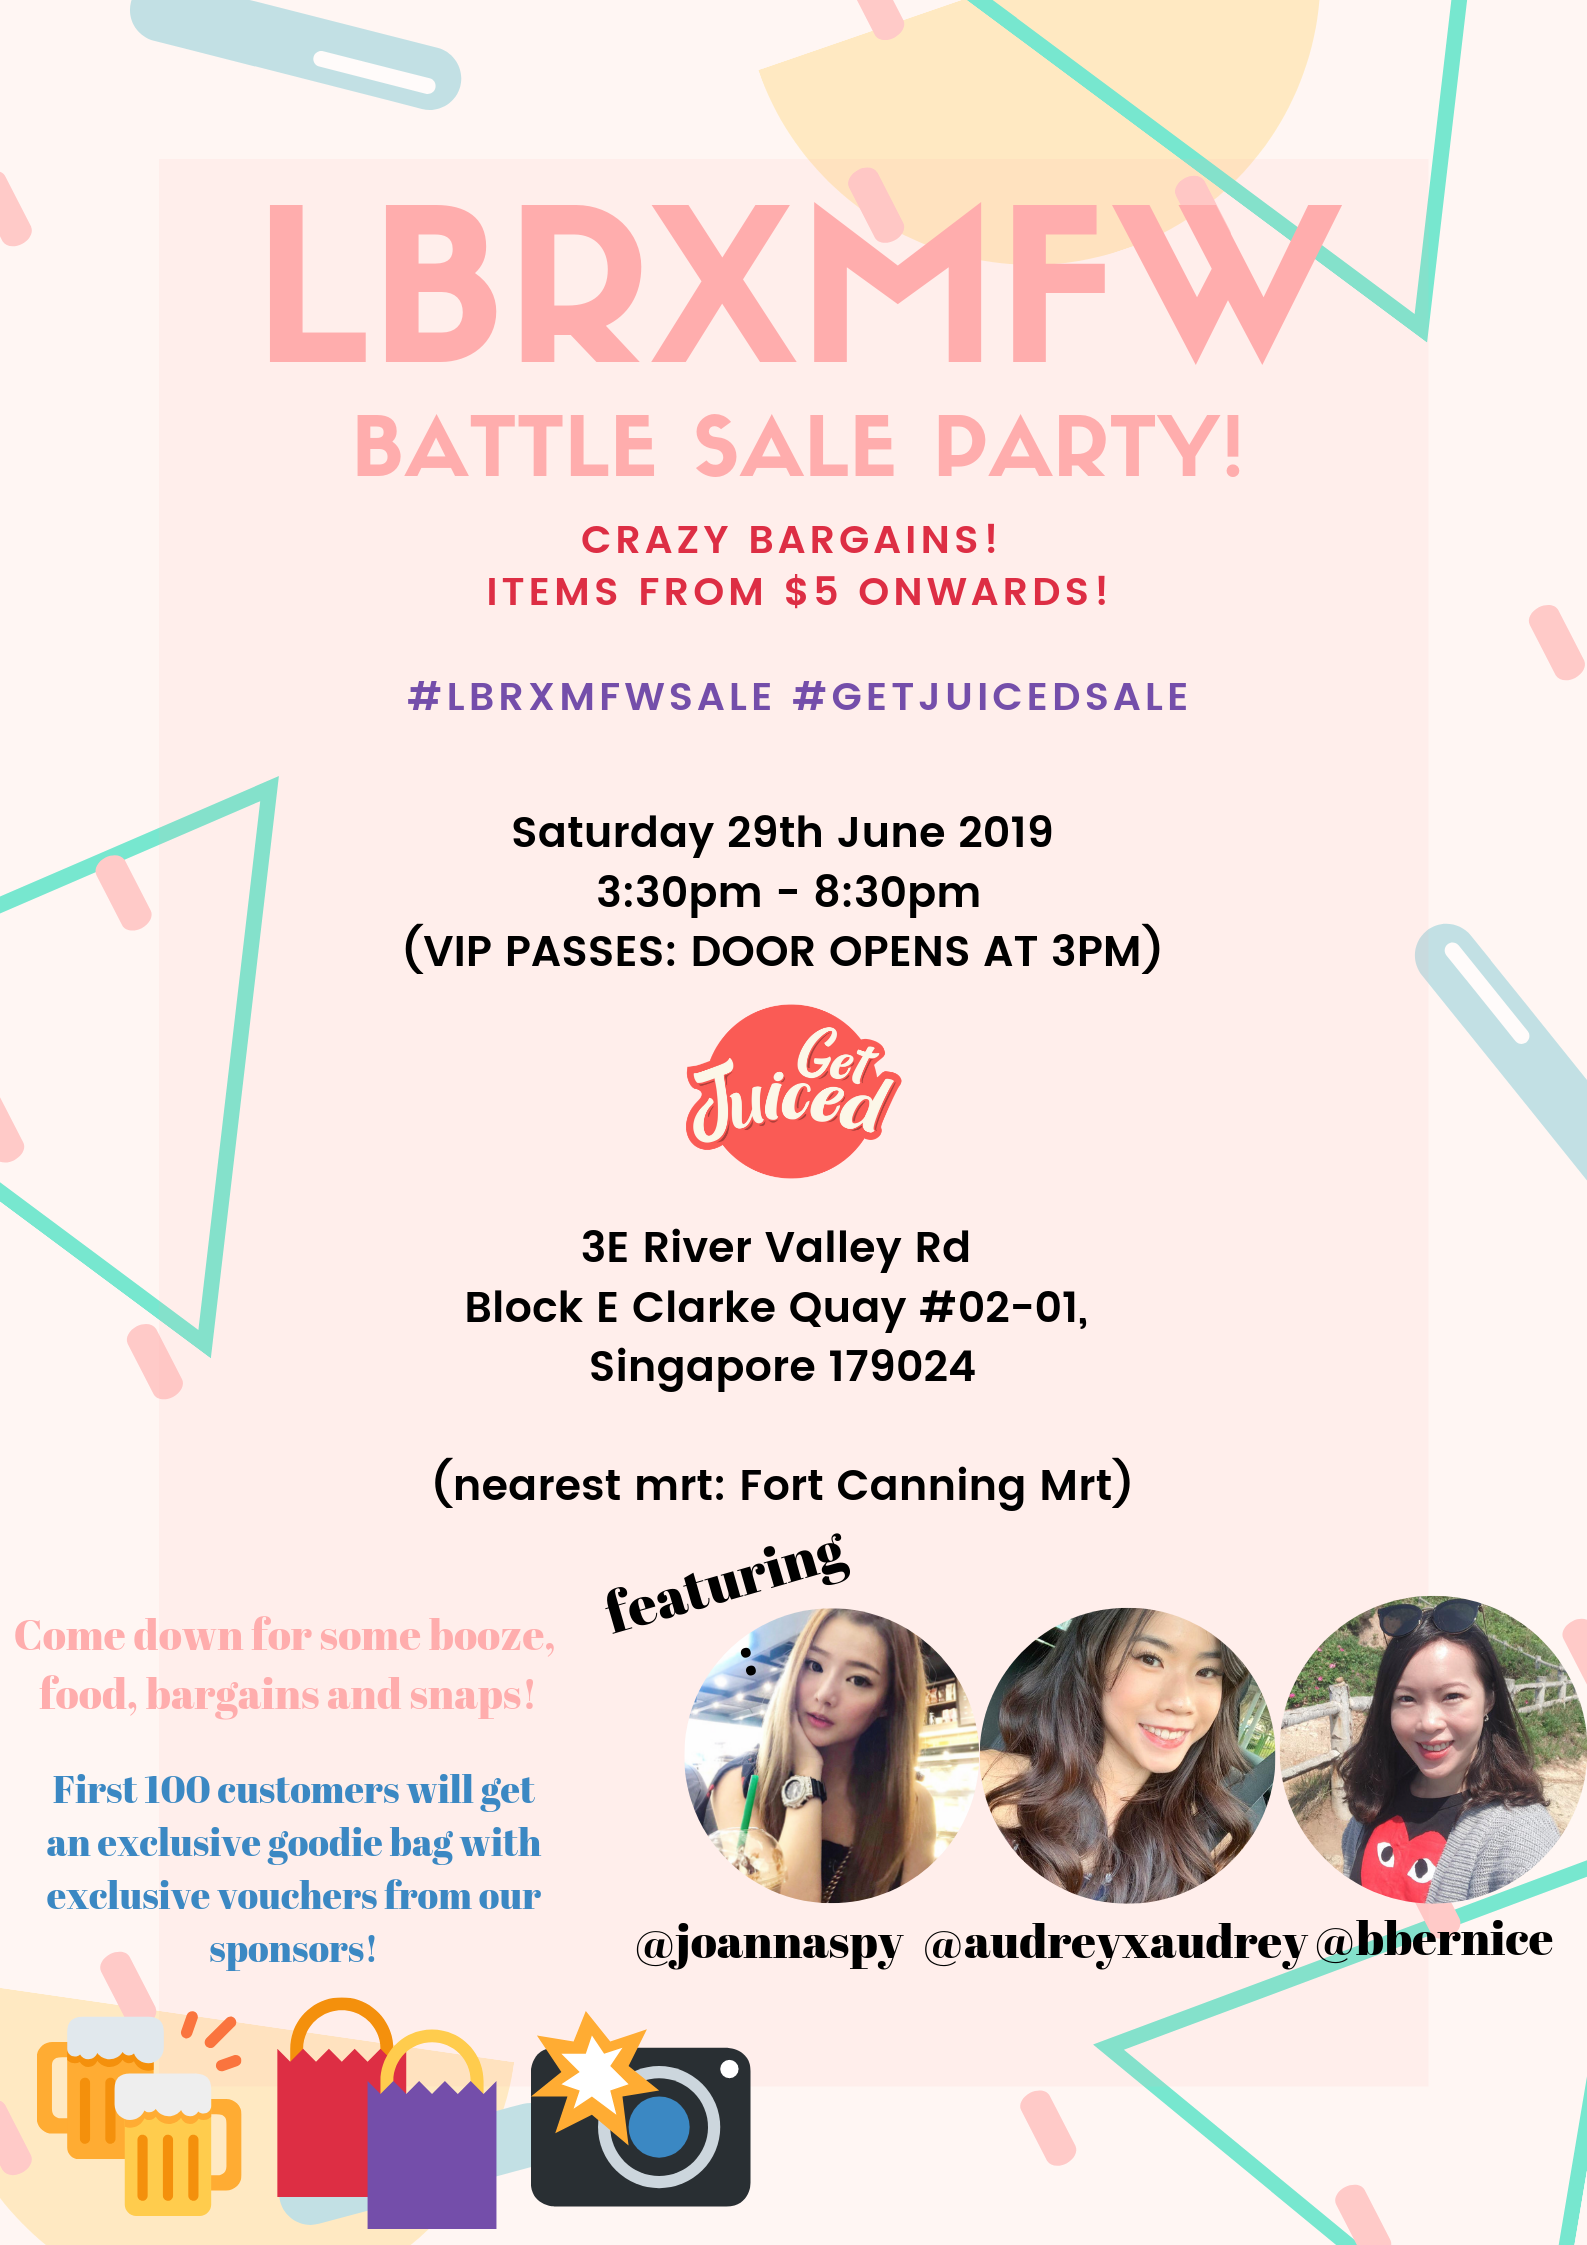 LBRXMFW BATTLE SALE PARTY | BIGGEST WAREHOUSE SALE!